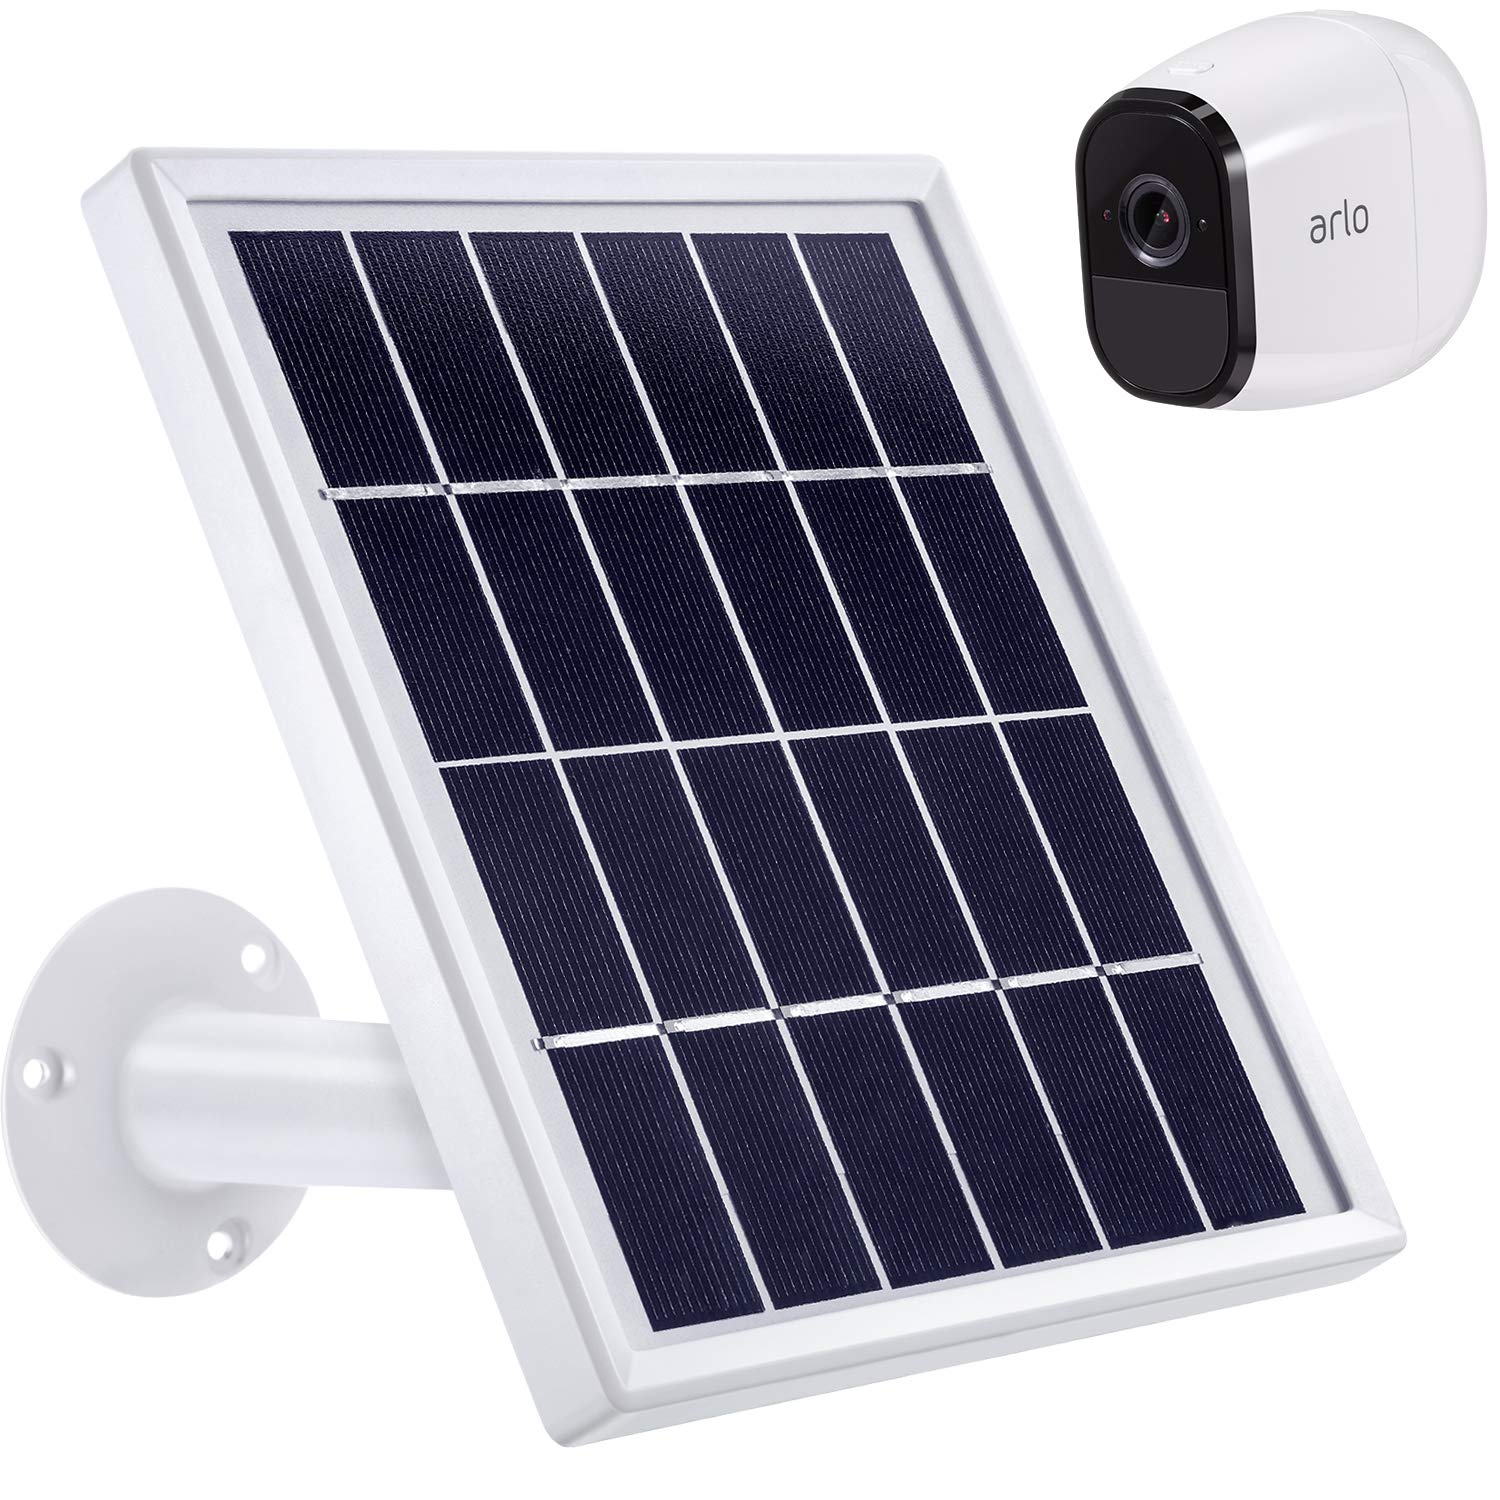 Blulu Solar Panel Compatible with Arlo Pro, Waterproof Arlo Accessory to Power Arlo Pro Outdoor Security Camera Continuously with Adjustable Mount Bracket, 12 Feet/ 3.6 m Cable by Blulu